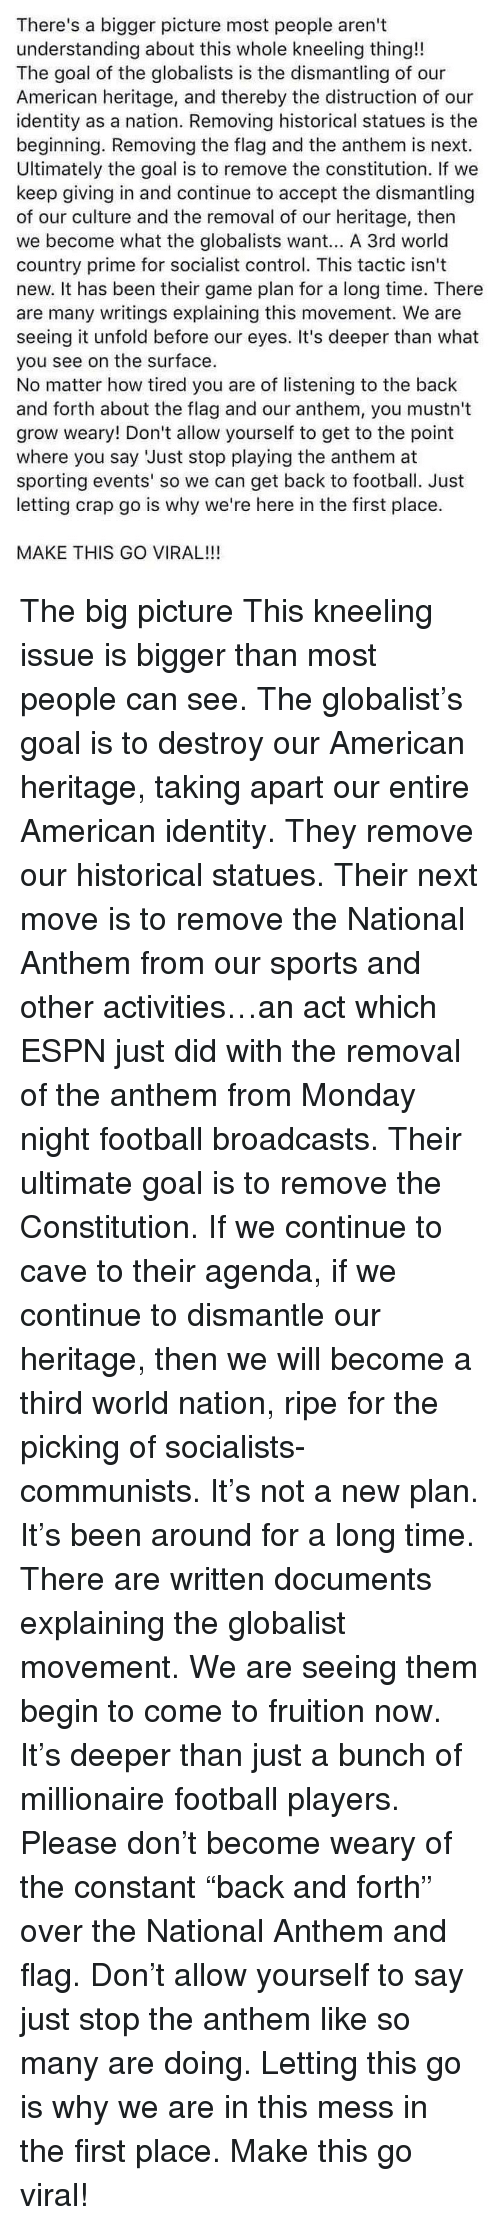 "Espn, Football, and Memes: There's a bigger picture most people aren't  understanding about this whole kneeling thing!!  The goal of the globalists is the dismantling of our  American heritage, and thereby the distruction of our  identity as a nation. Removing historical statues is the  beginning. Removing the flag and the anthem is next.  Ultimately the goal is to remove the constitution. If we  keep giving in and continue to accept the dismantling  of our culture and the removal of our heritage, then  we become what the globalists want... A 3rd world  country prime for socialist control. This tactic isn't  new. It has been their game plan for a long time. There  are many writings explaining this movement. We are  seeing it unfold before our eyes. It's deeper than what  you see on the surface.  No matter how tired you are of listening to the back  and forth about the flag and our anthem, you mustn't  grow weary! Don't allow yourself to get to the point  where you say Just stop playing the anthem at  sporting events' so we can get back to football. Just  letting crap go is why we're here in the first place.  MAKE THIS GO VIRAL!!! The big picture This kneeling issue is bigger than most people can see. The globalist's goal is to destroy our American heritage, taking apart our entire American identity. They remove our historical statues. Their next move is to remove the National Anthem from our sports and other activities…an act which ESPN just did with the removal of the anthem from Monday night football broadcasts. Their ultimate goal is to remove the Constitution. If we continue to cave to their agenda, if we continue to dismantle our heritage, then we will become a third world nation, ripe for the picking of socialists-communists. It's not a new plan. It's been around for a long time. There are written documents explaining the globalist movement. We are seeing them begin to come to fruition now. It's deeper than just a bunch of millionaire football players. Please don't become weary of the constant ""back and forth"" over the National Anthem and flag. Don't allow yourself to say just stop the anthem like so many are doing. Letting this go is why we are in this mess in the first place. Make this go viral!"